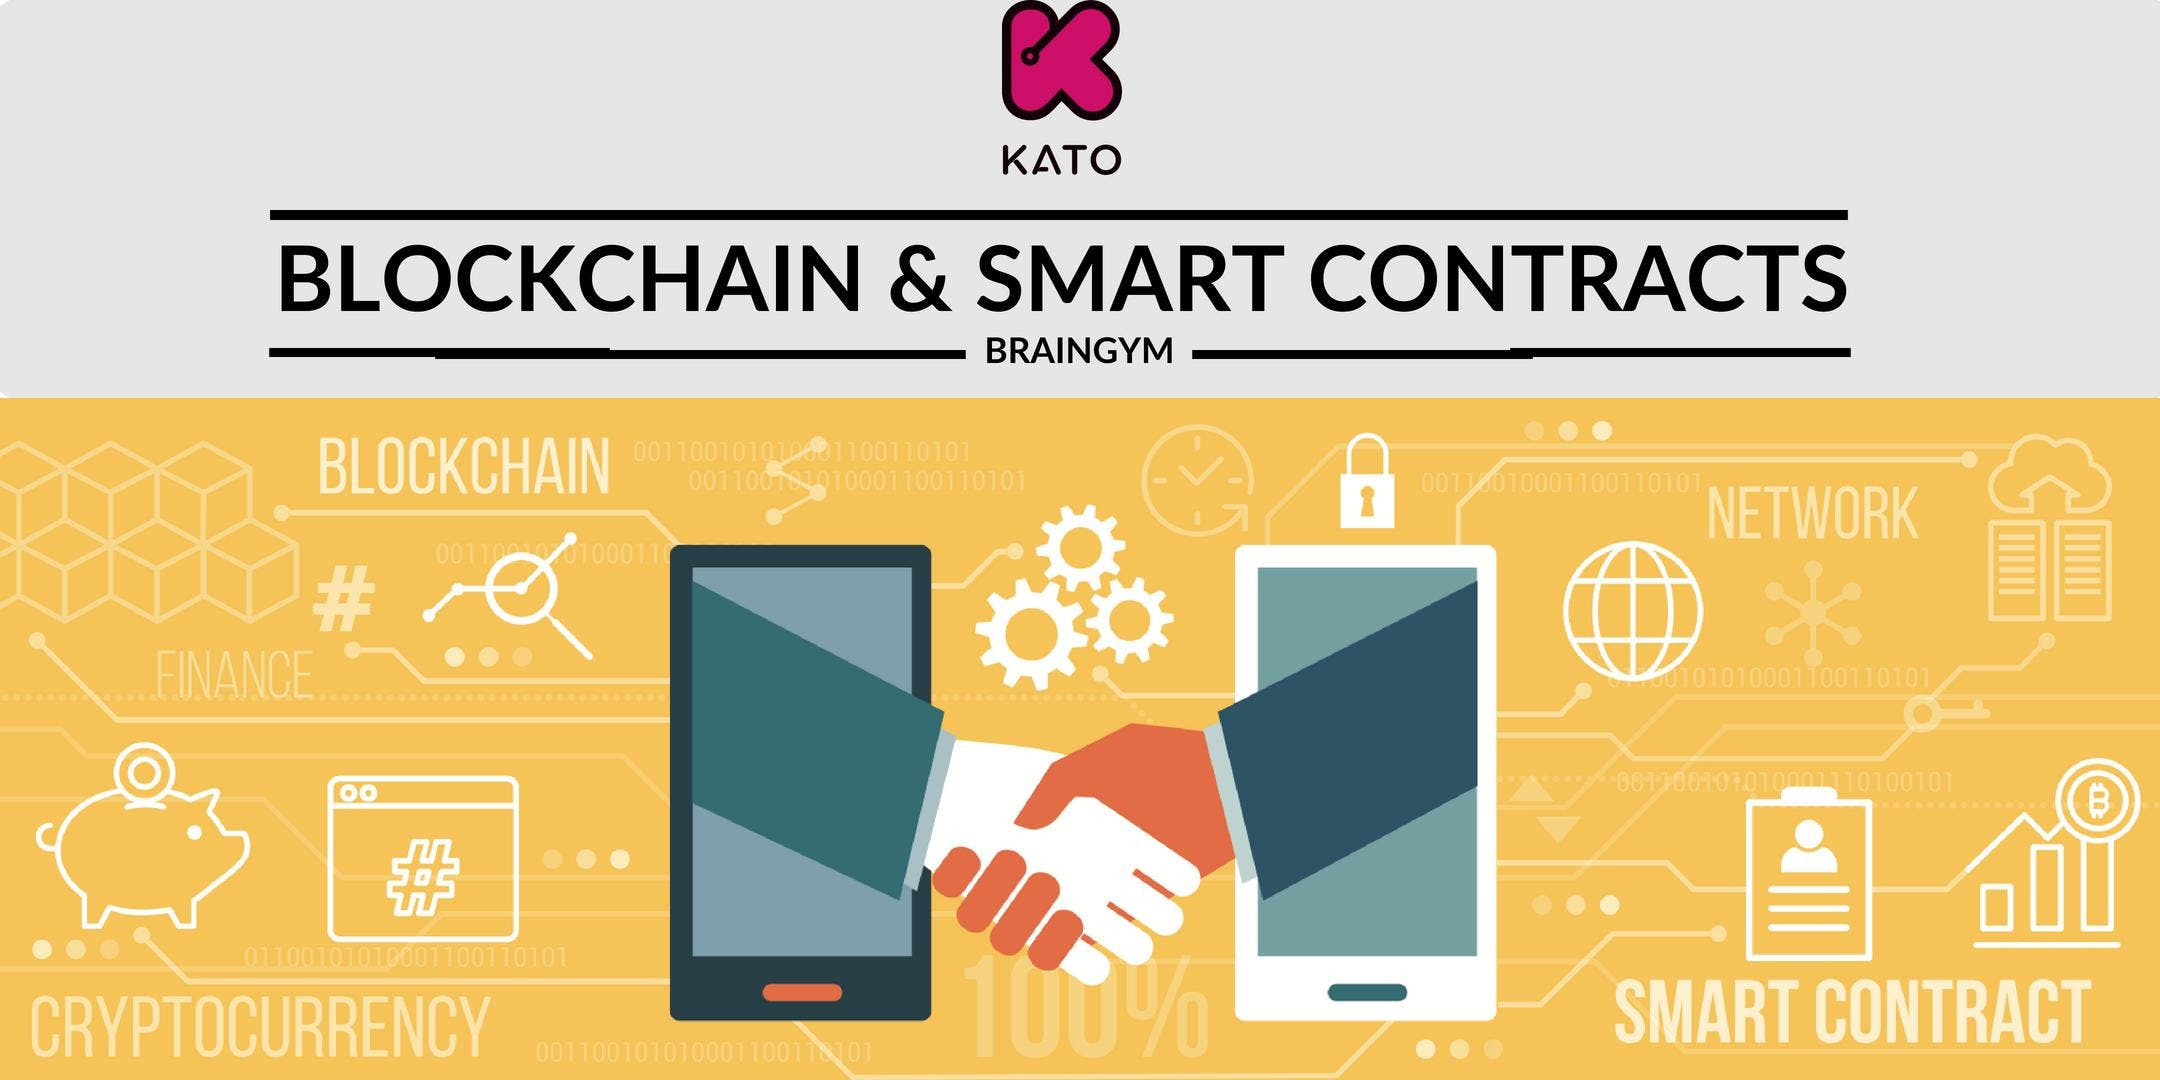 BrainGym: Blockchain & Smart Contracts Class